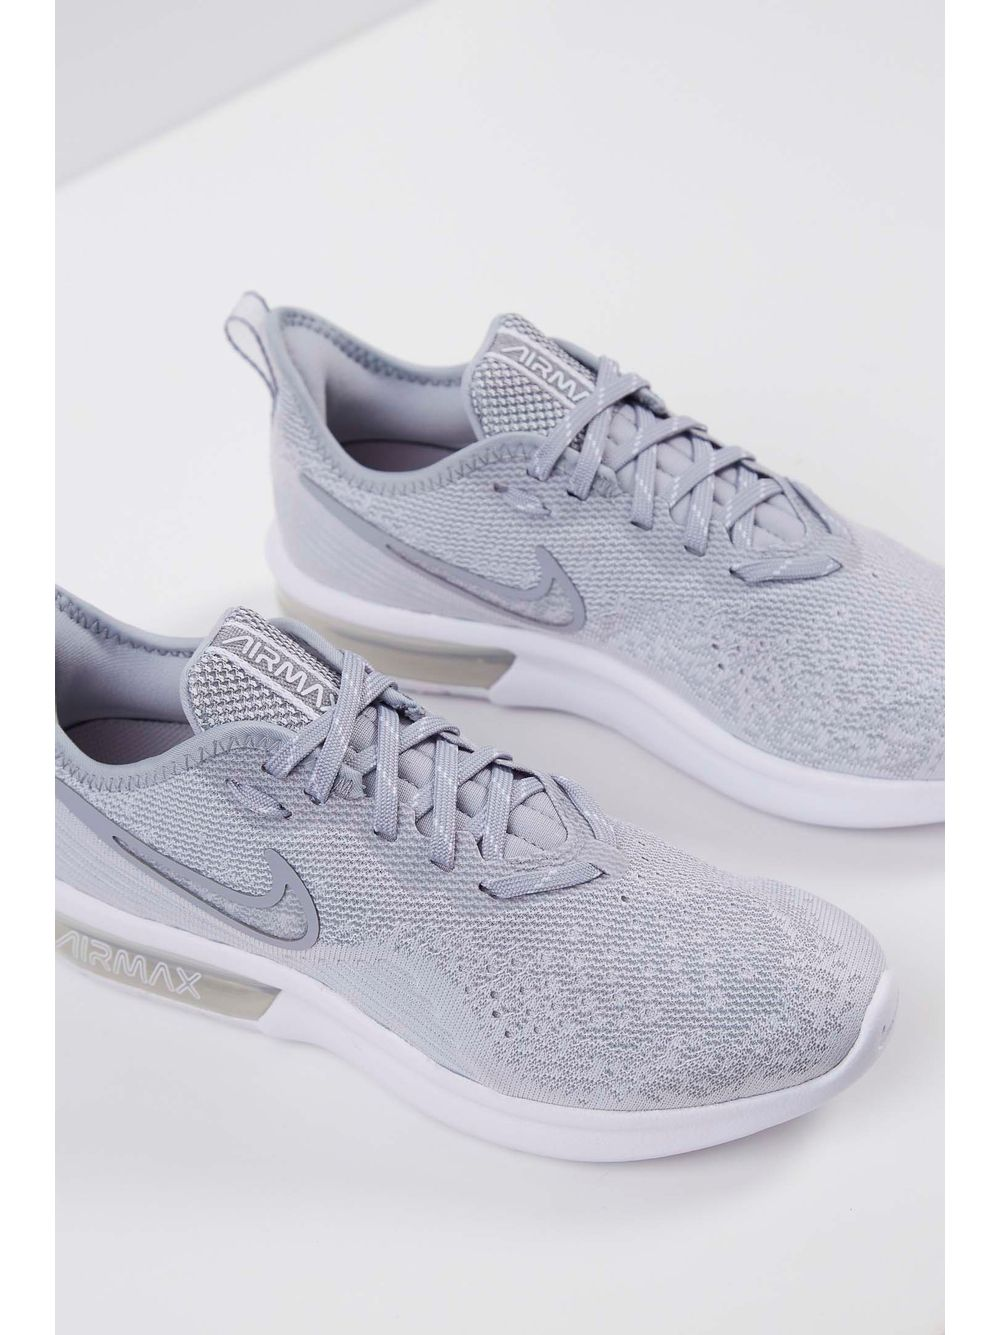 c328c811c21 Tênis Nike Air Max Sequent 4 Cinza - pittol